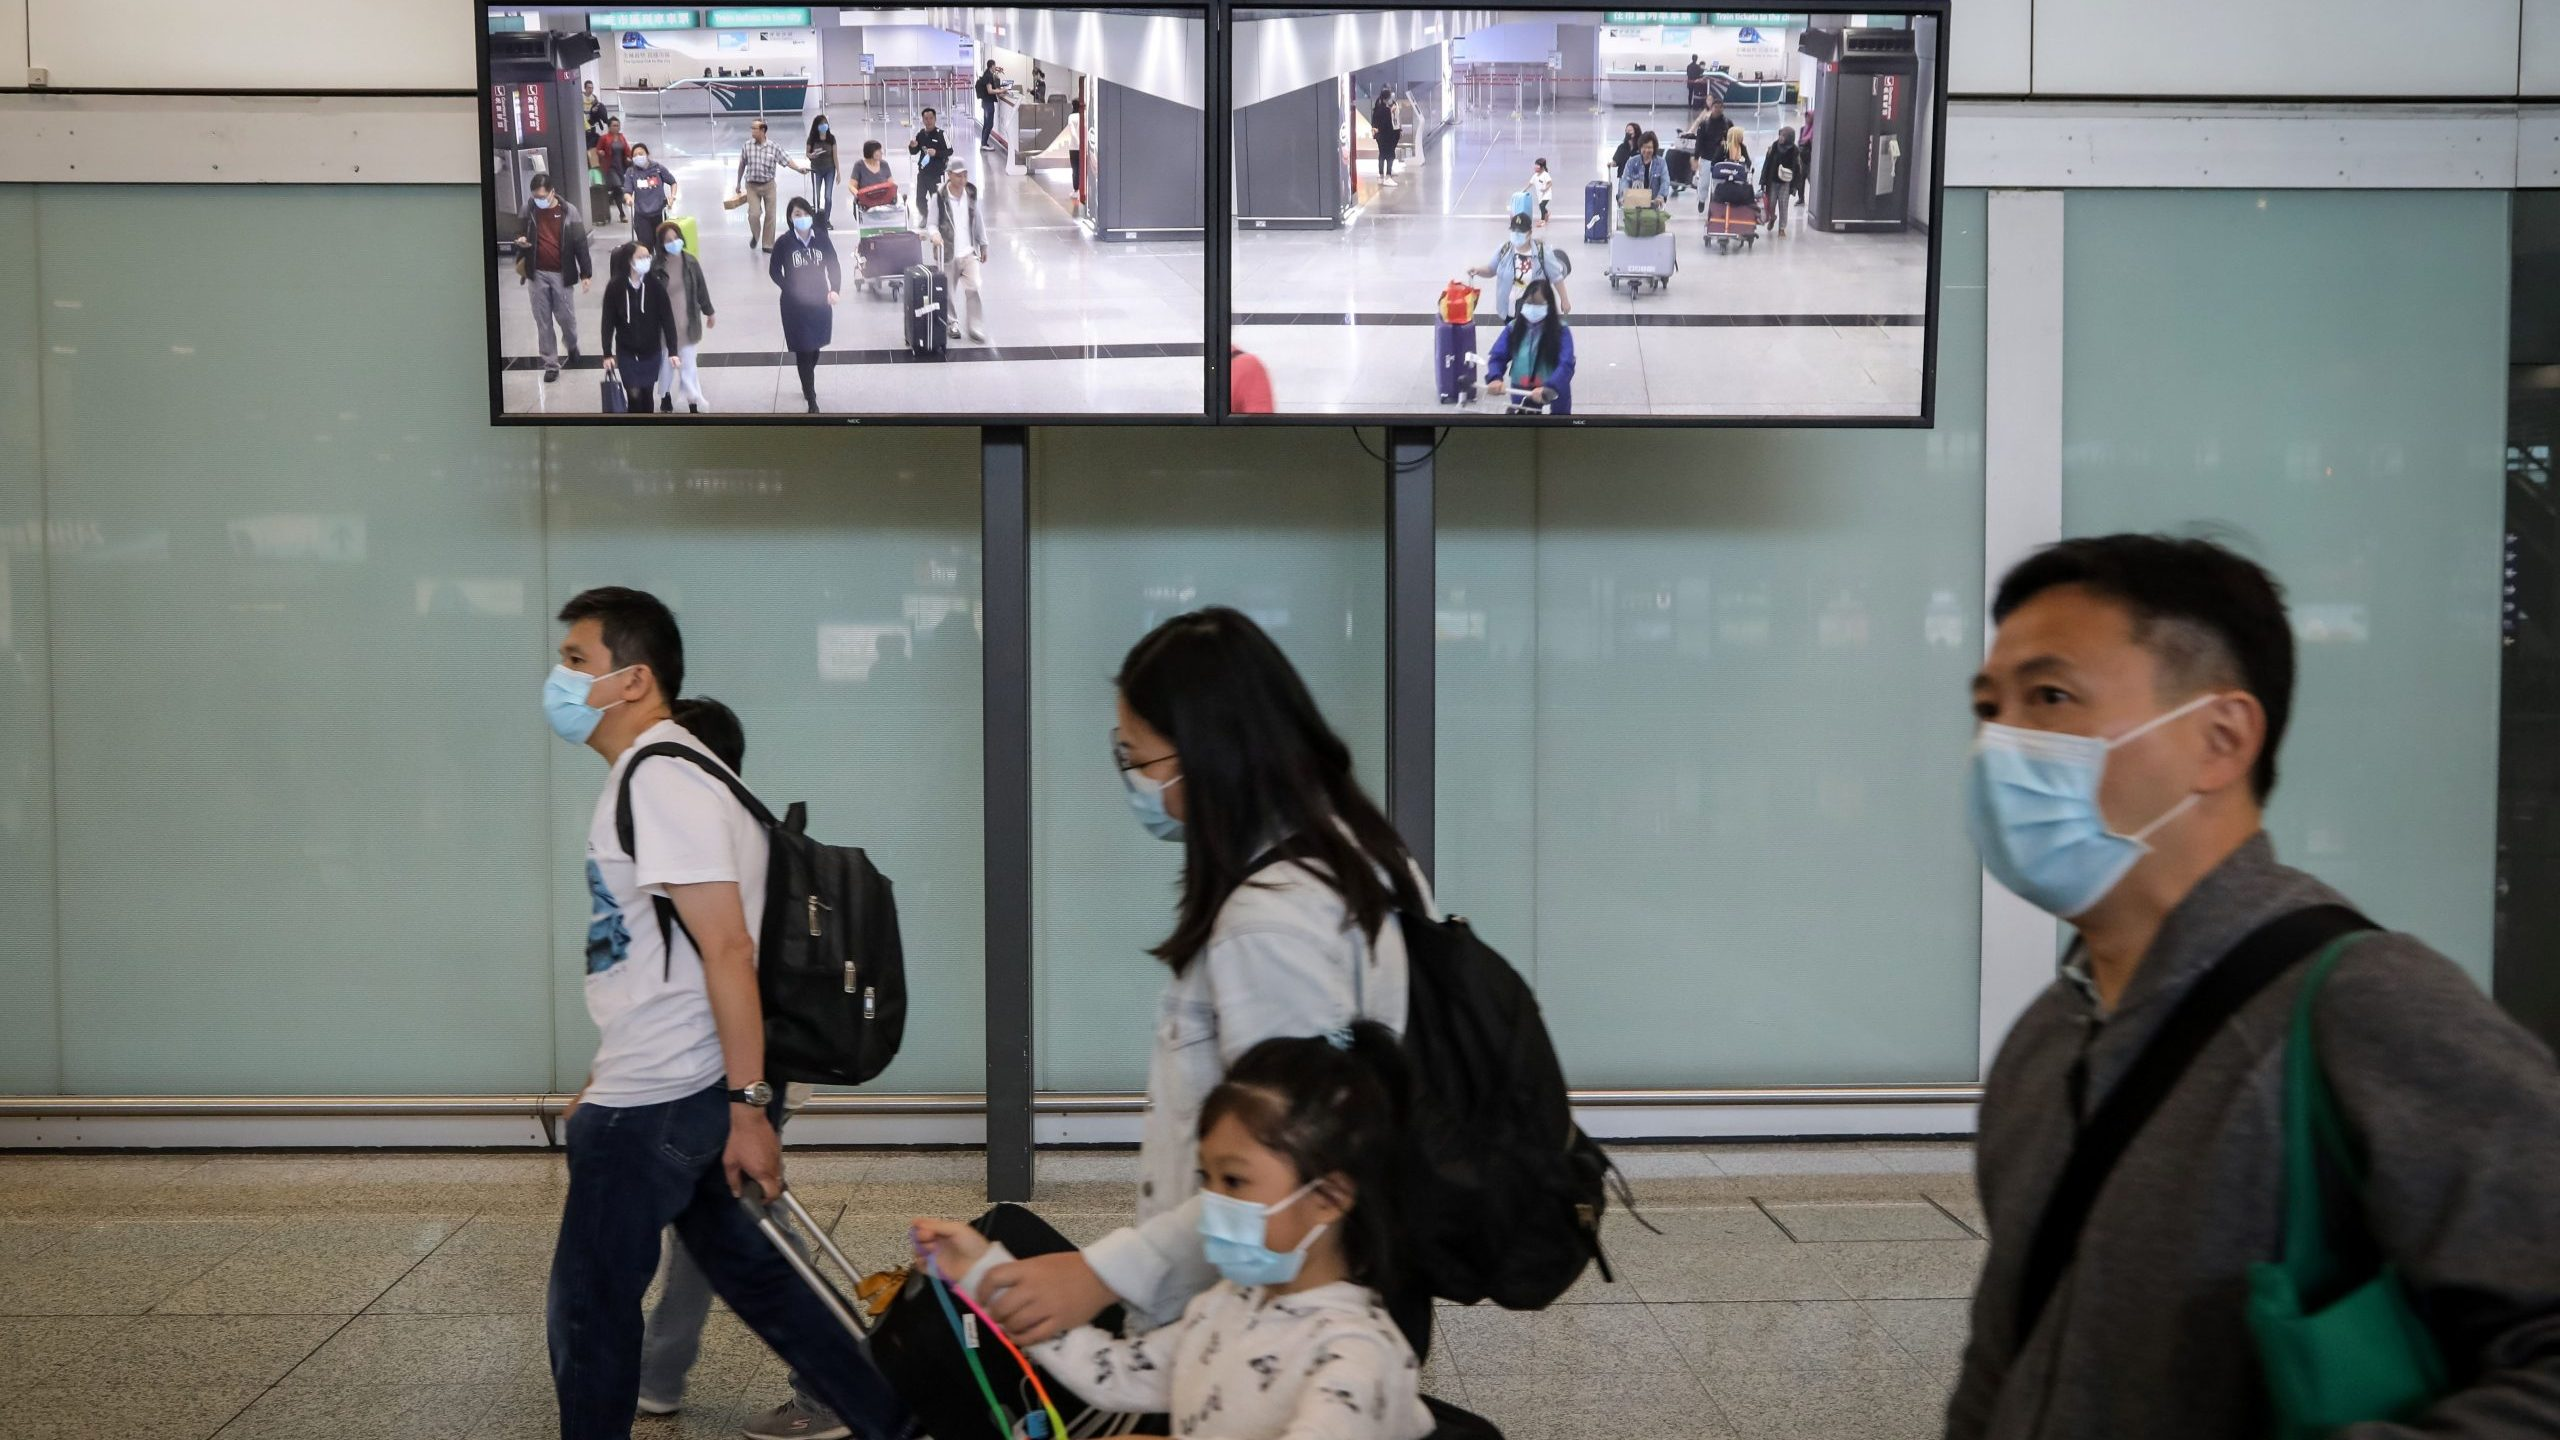 Travelers wearing face masks as a precautionary measure walk in the arrivals area at Hong Kong International Airport ahead of the Chinese New Year in Hong Kong on Jan. 23, 2020. (Credit: VIVEK PRAKASH/AFP via Getty Images)